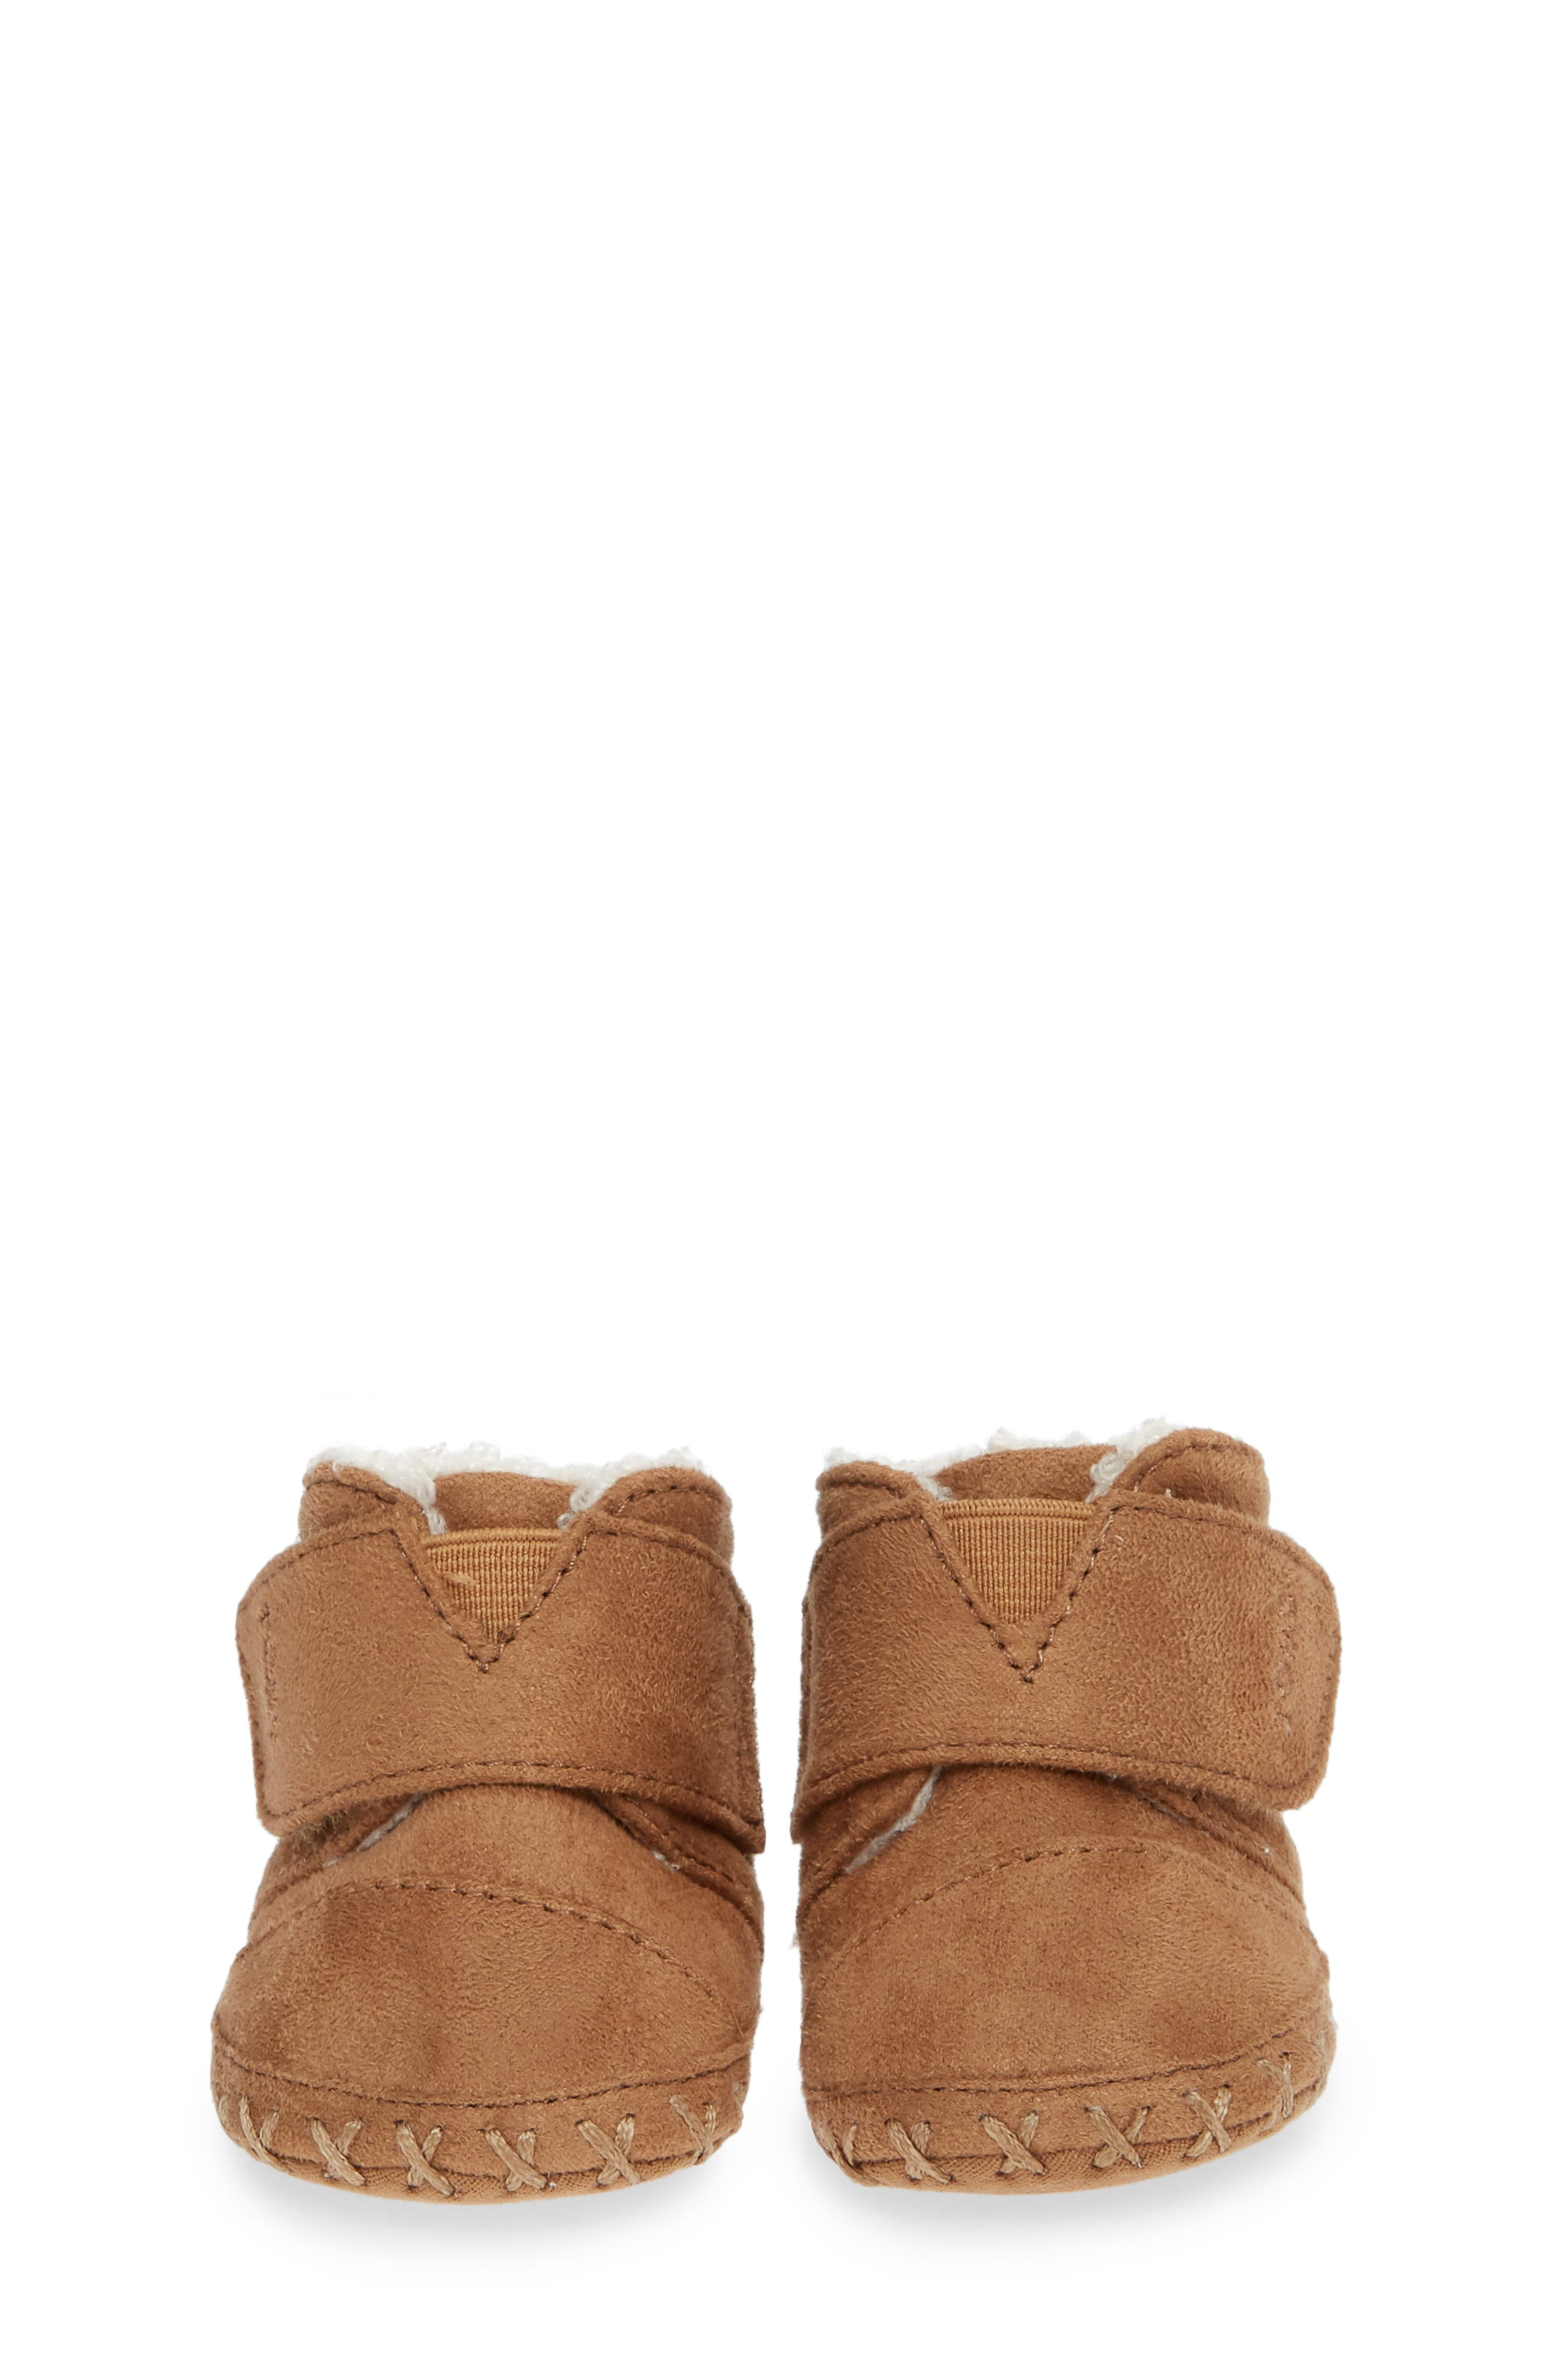 Tiny Cuna Faux Fur Crib Bootie,                             Alternate thumbnail 5, color,                             TOFFEE MICROFIBER